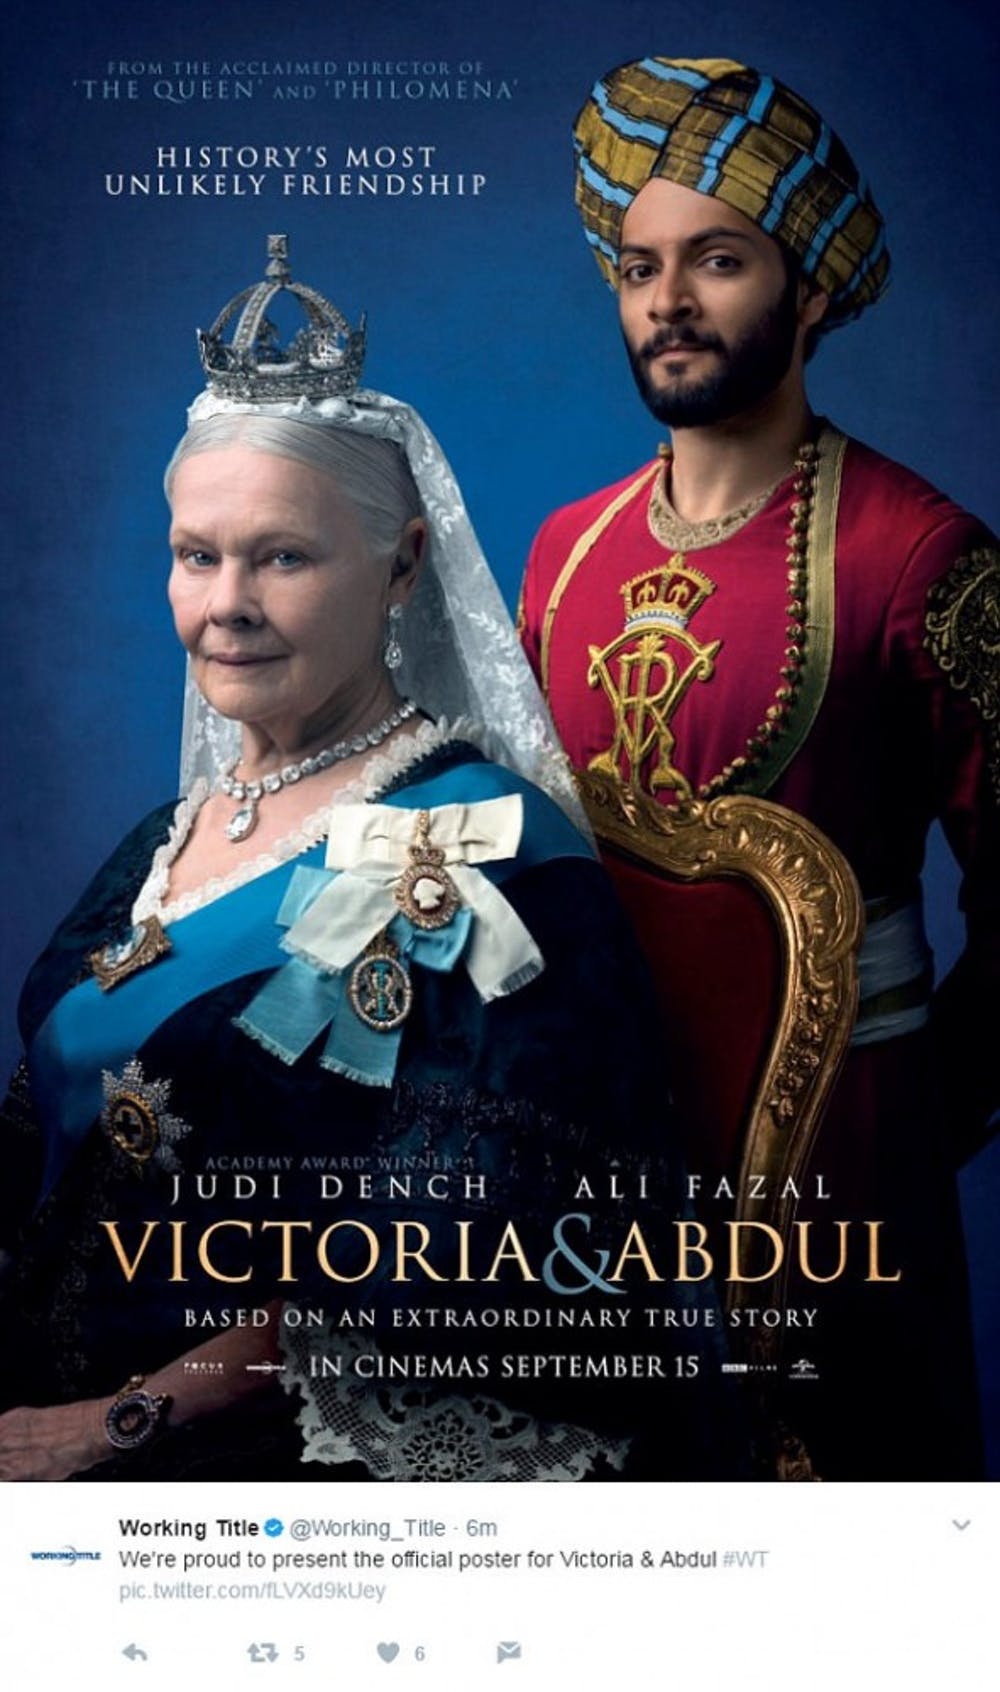 40F06E7500000578-4555860-Royal_unveiling_Dame_Judi_Dench_appears_as_Queen_Victoria_in_the-a-62_1496169195645.jpg